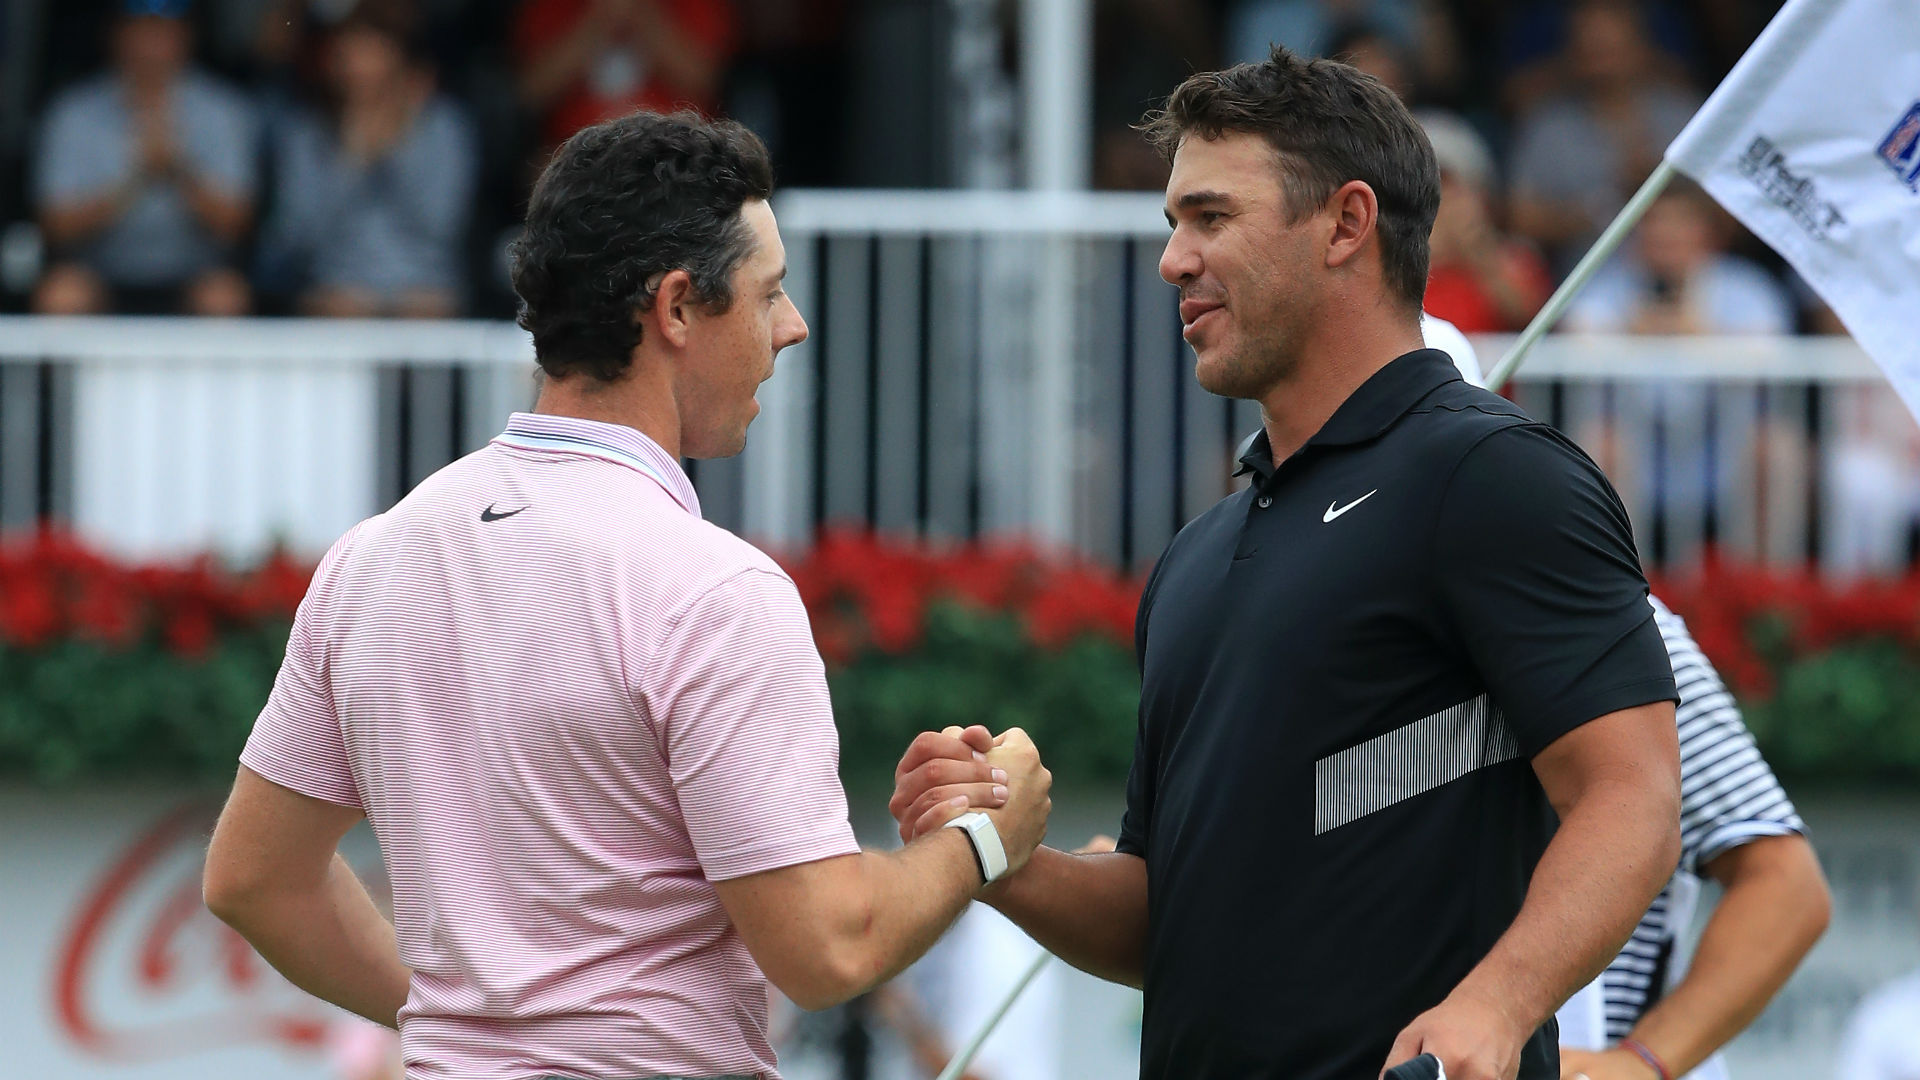 He hasn't won a major for five years! - Koepka dismisses McIlroy rivalry talk